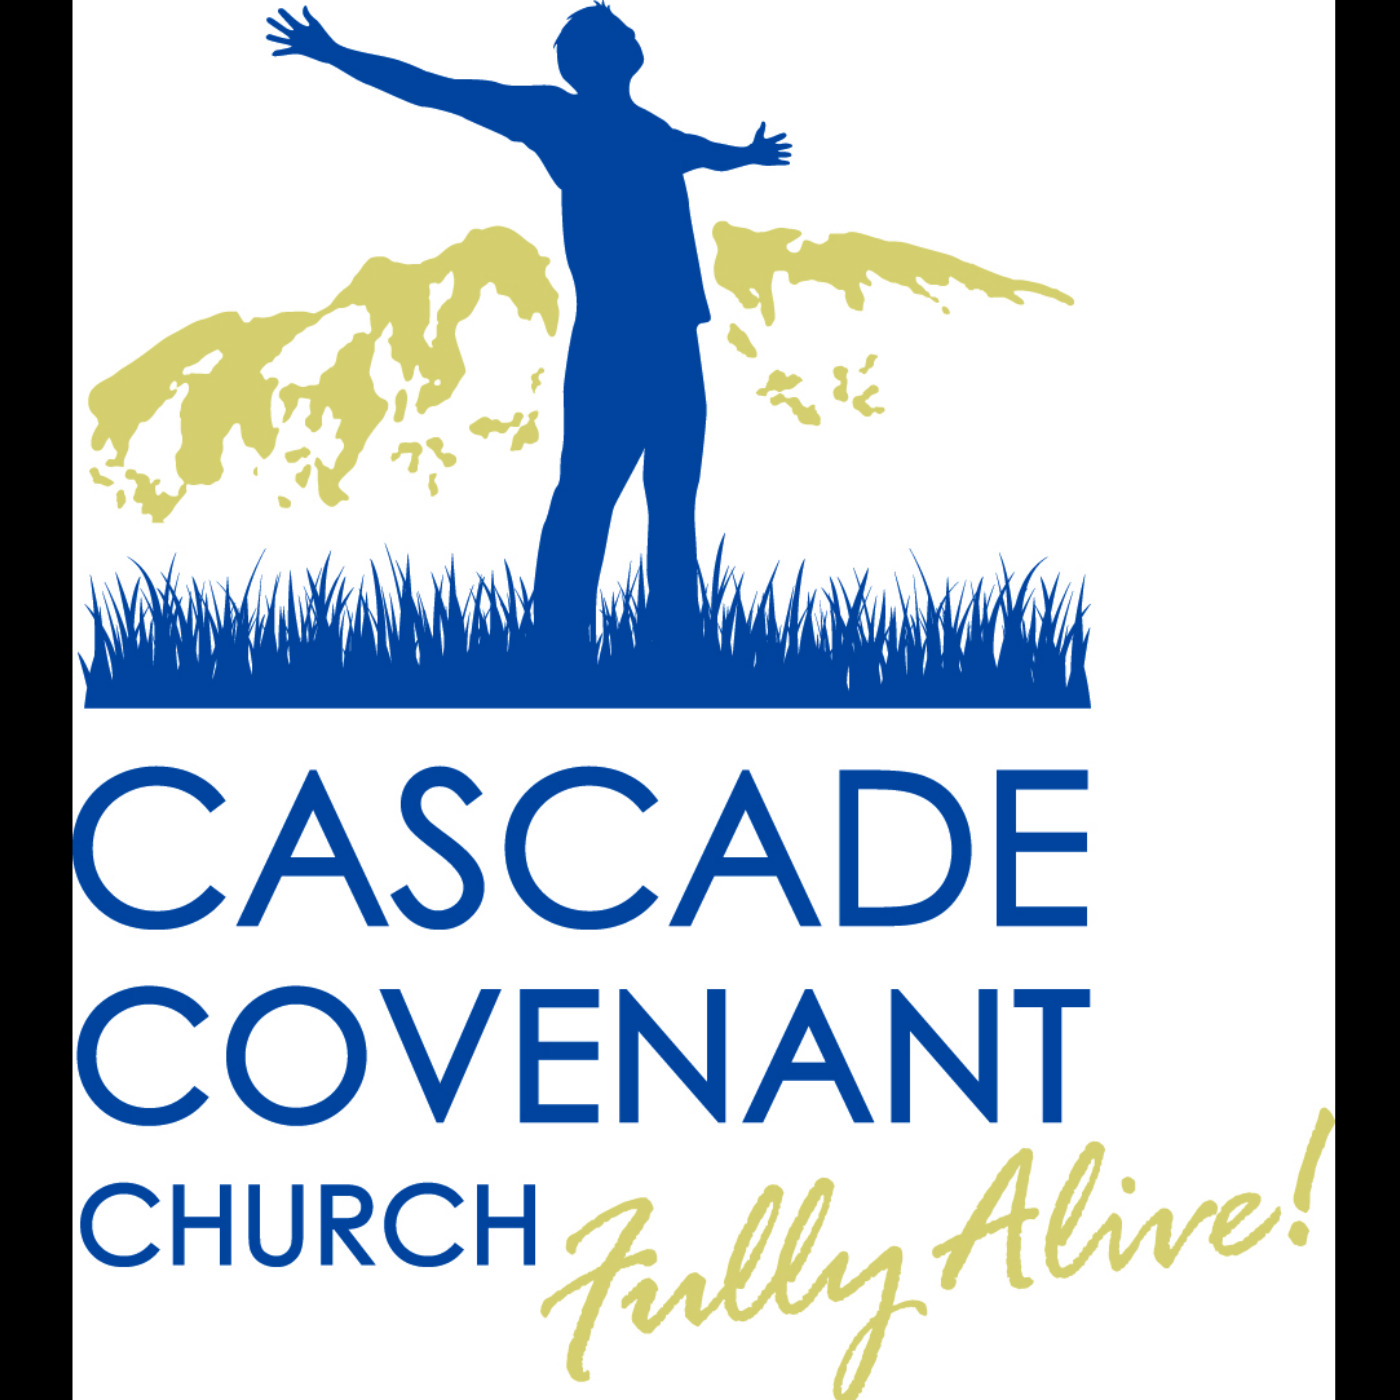 Cascade Covenant Church Messages